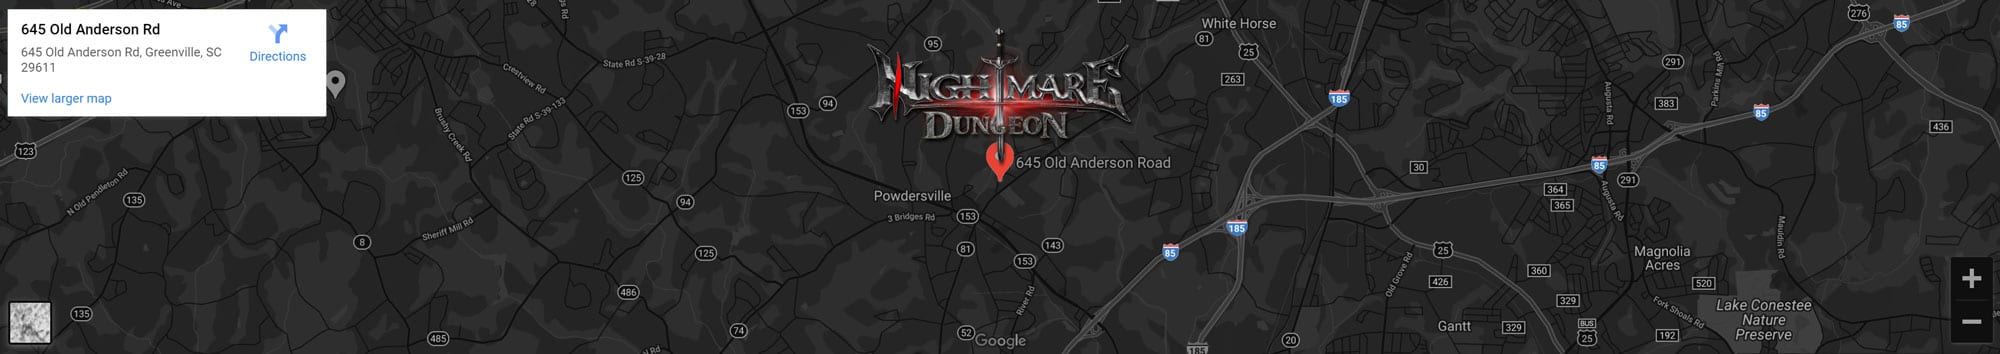 Nightmare Dungeon at